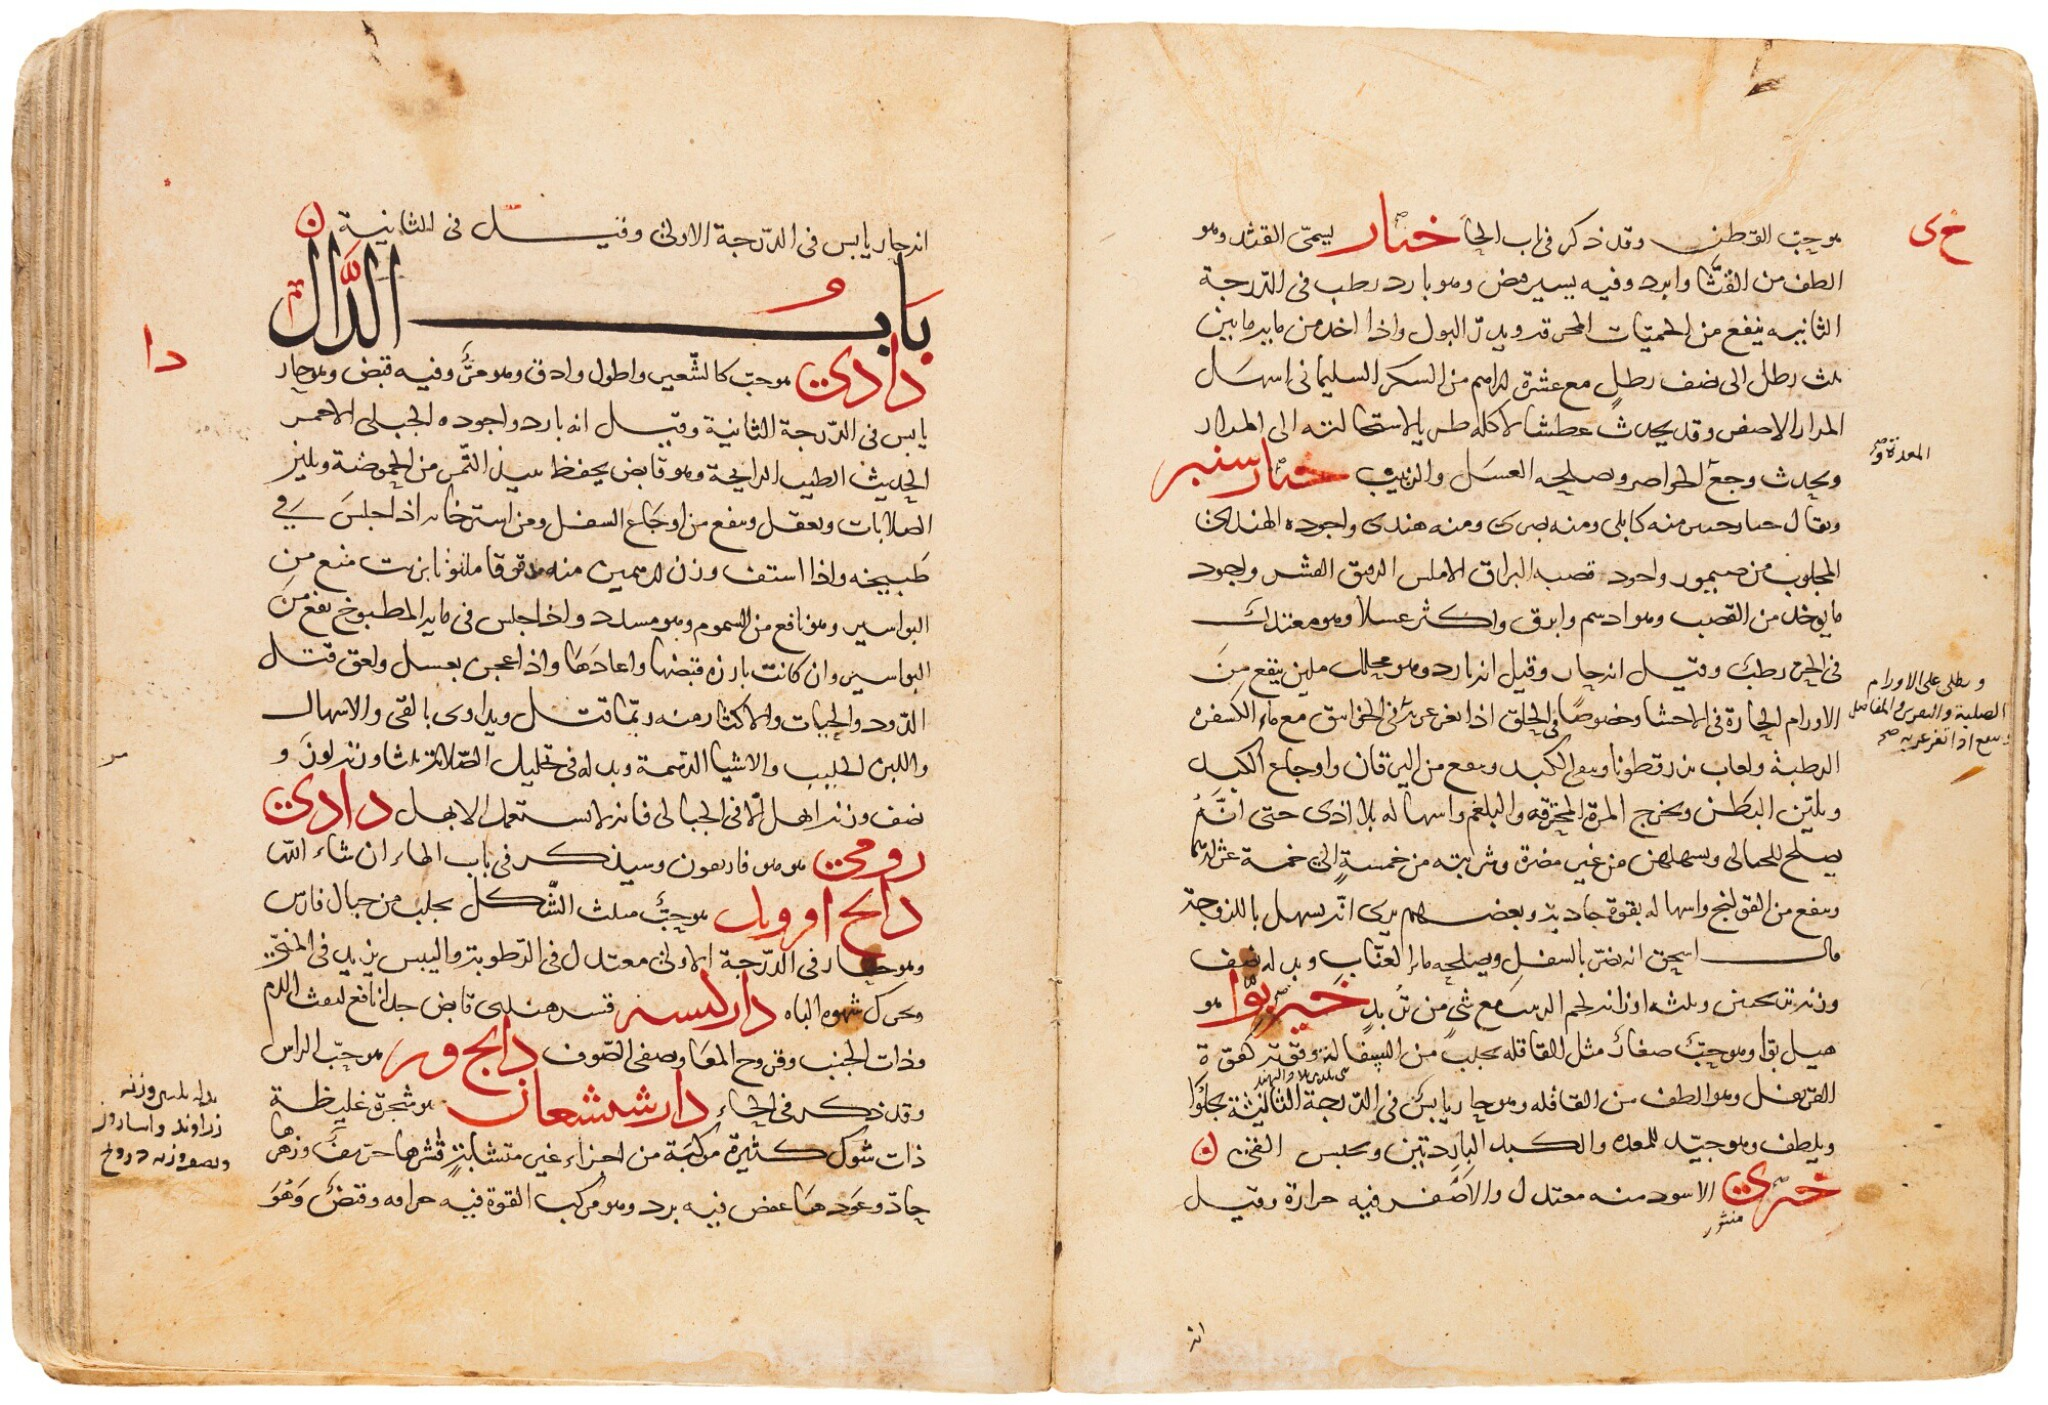 View full screen - View 1 of Lot 116. ABU 'ALI YAHYA B. 'ISA B. JAZLAH AL-BAGHDADI, KNOWN AS BEN GESLA (D.1099 AD), KITAB MINHAJ AL-BAYAN FI-MA YASTA'MILUHU AL-INSAN, ('A SYSTEMATIC EXPOSITION OF WHAT IS USED BY MAN'), MESOPOTAMIA OR WEST PERSIA, LATE 13TH/14TH CENTURY.